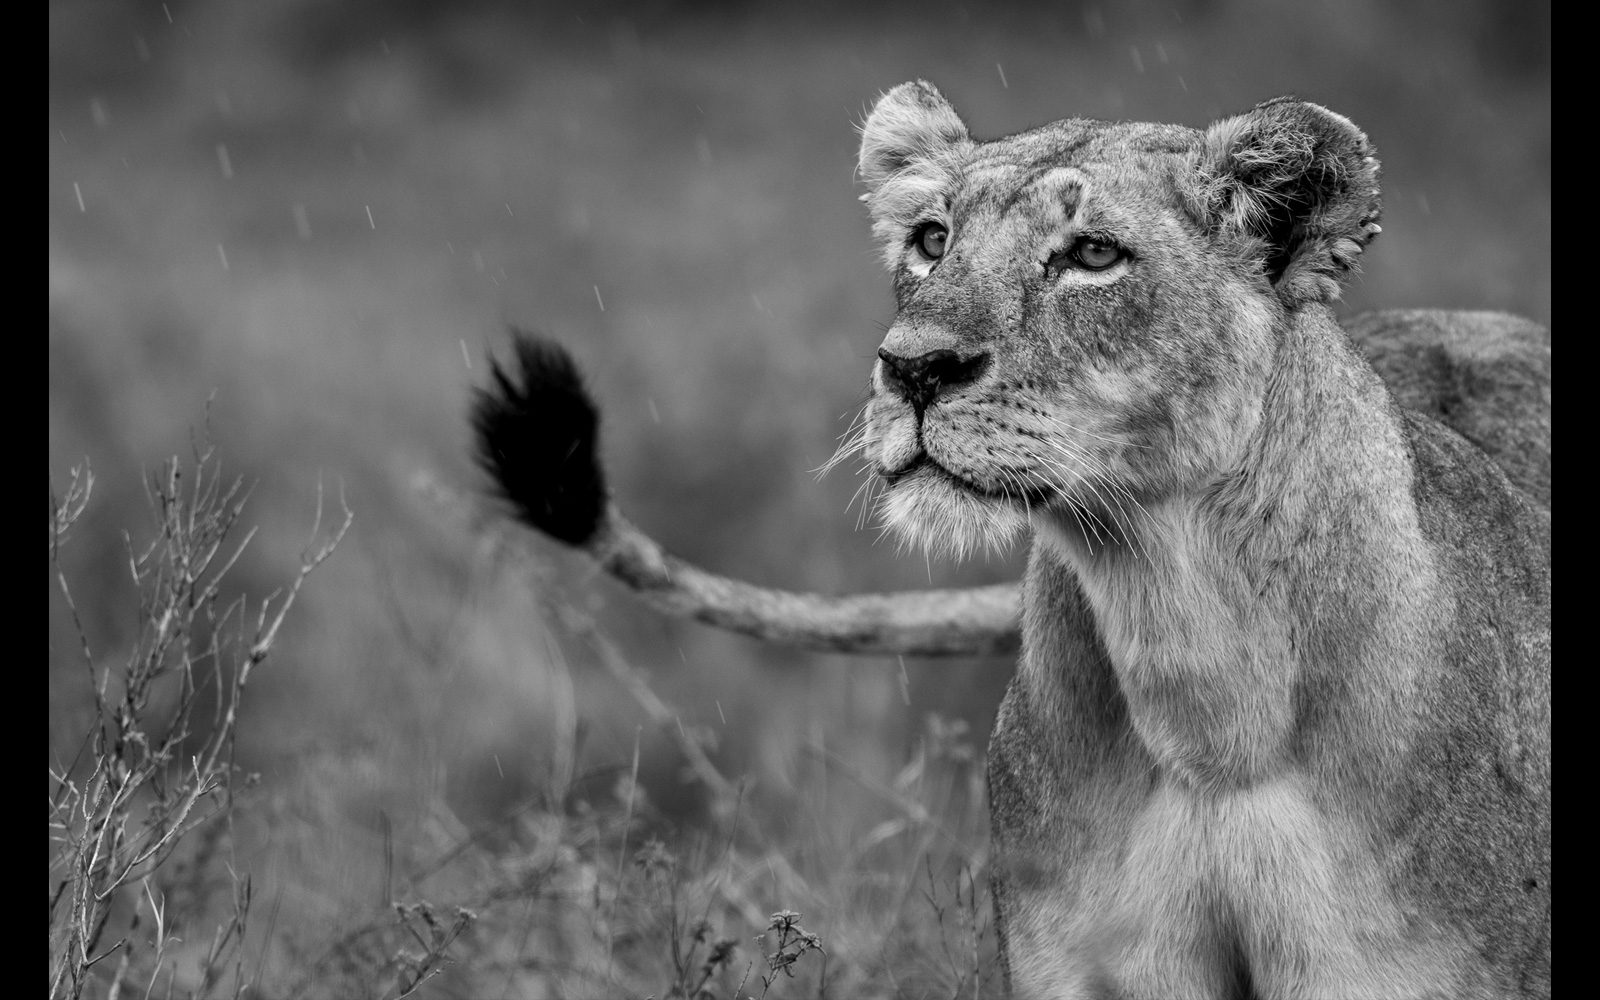 Lioness in the rain in Nairobi National Park, Kenya © Nagaraj Tilakraj